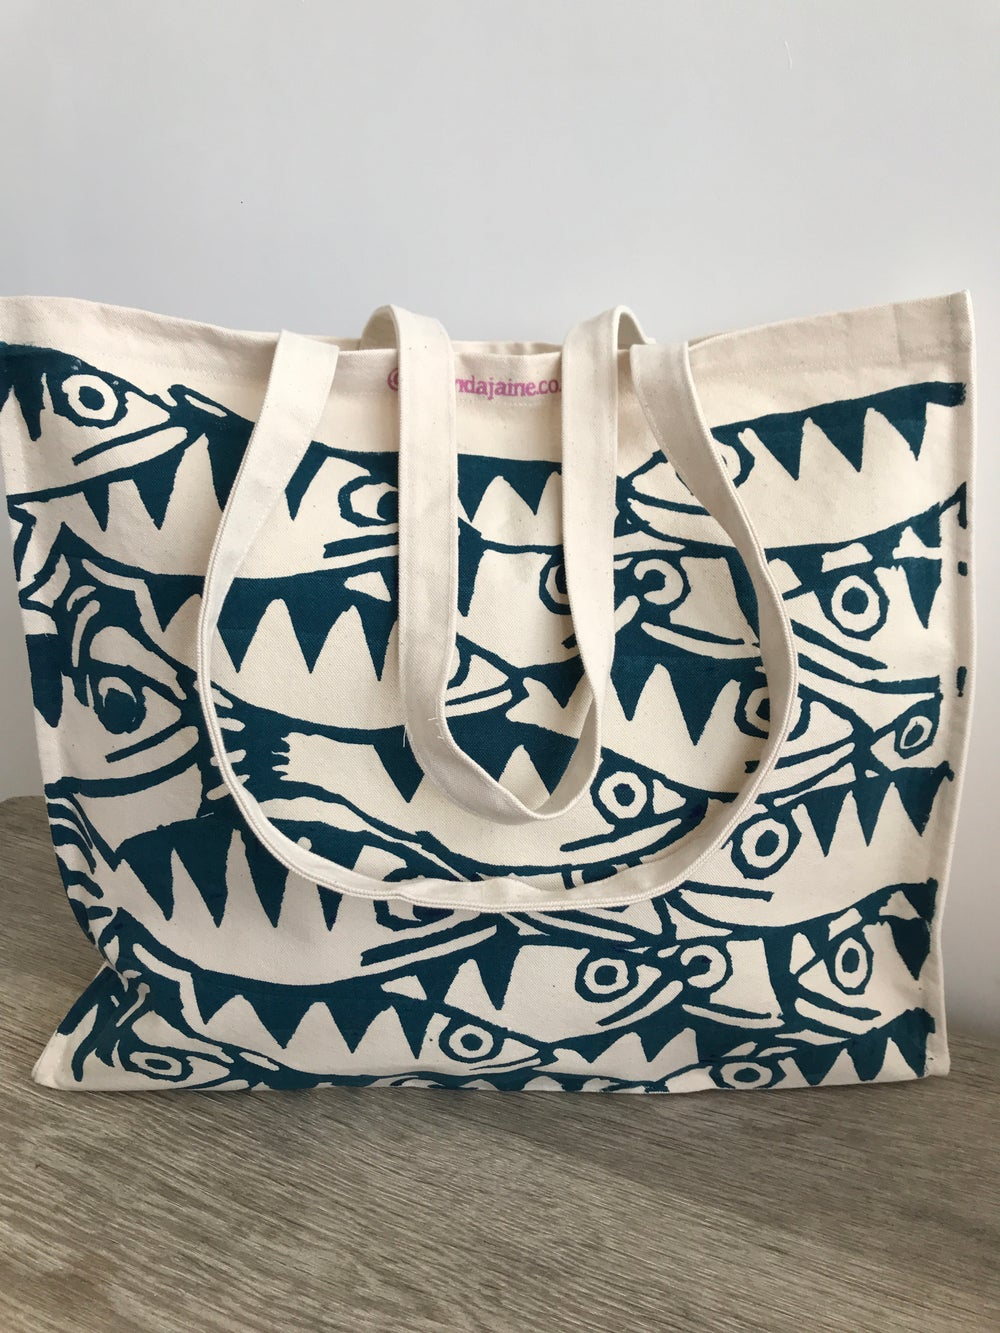 Image of Fish tote